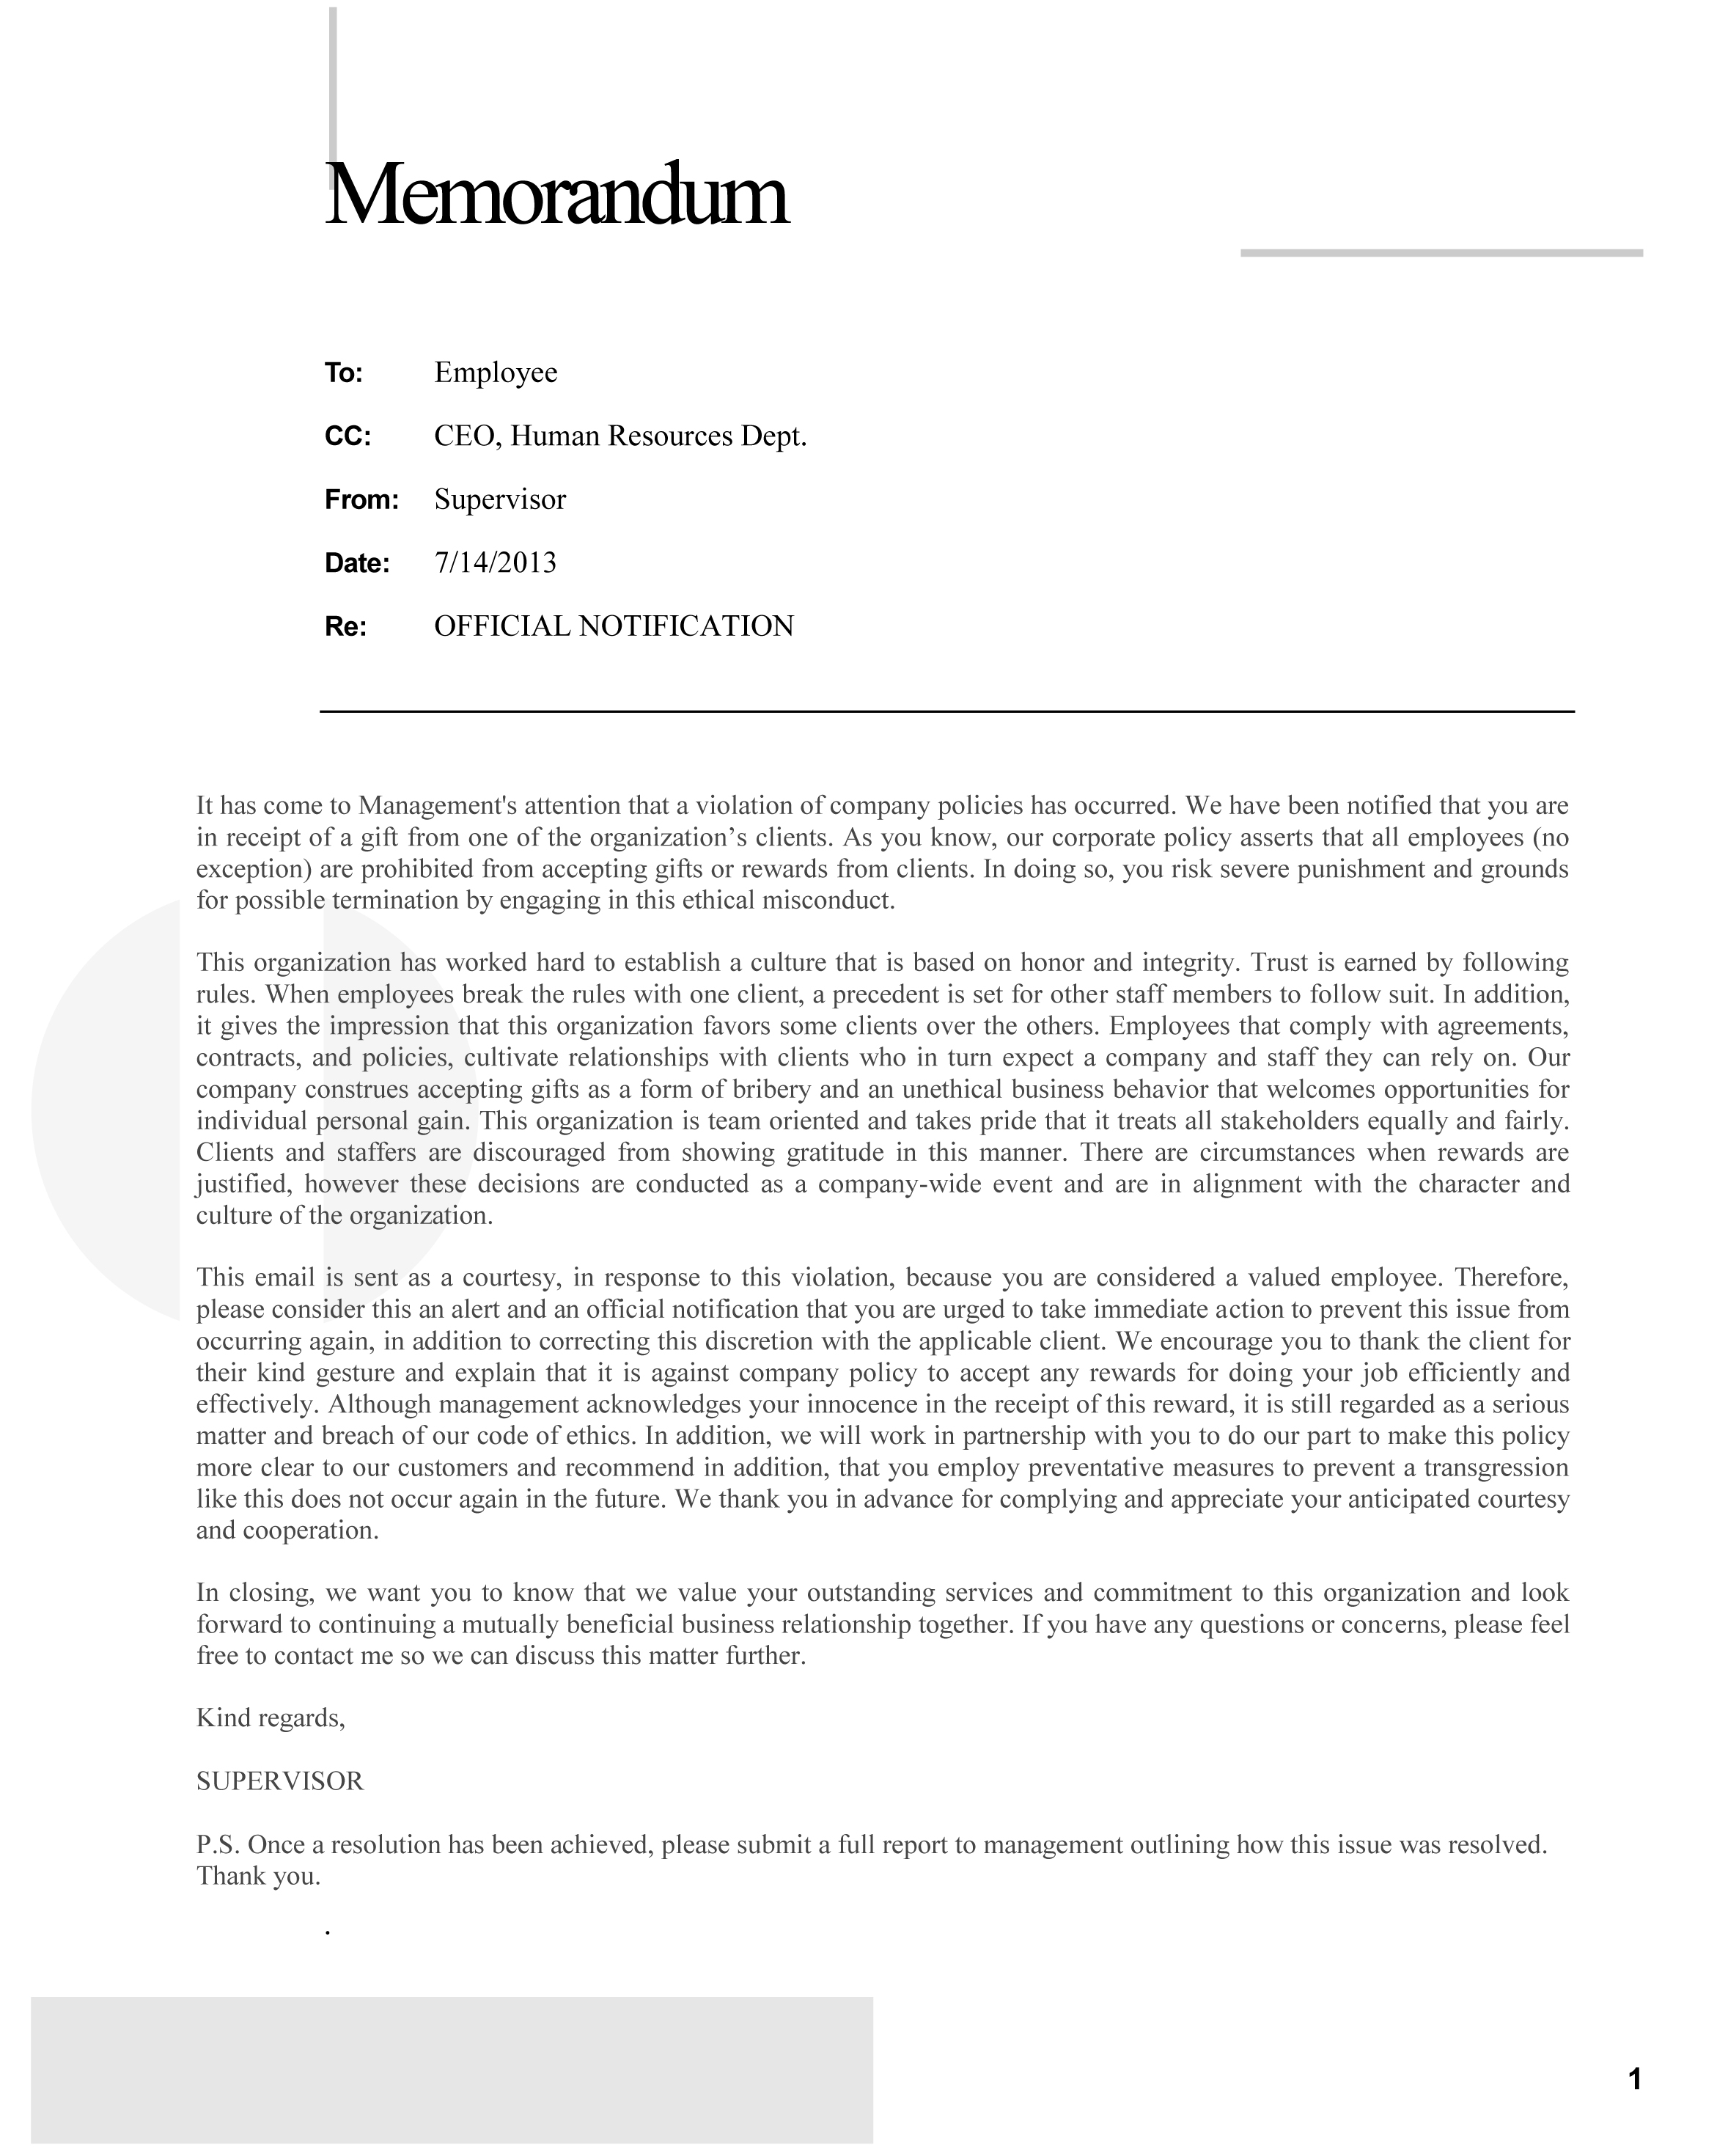 2013 r s organizational management by composing this letter the supervisor is immediately taking responsibility of the seriousness of the matter and addresses the situation